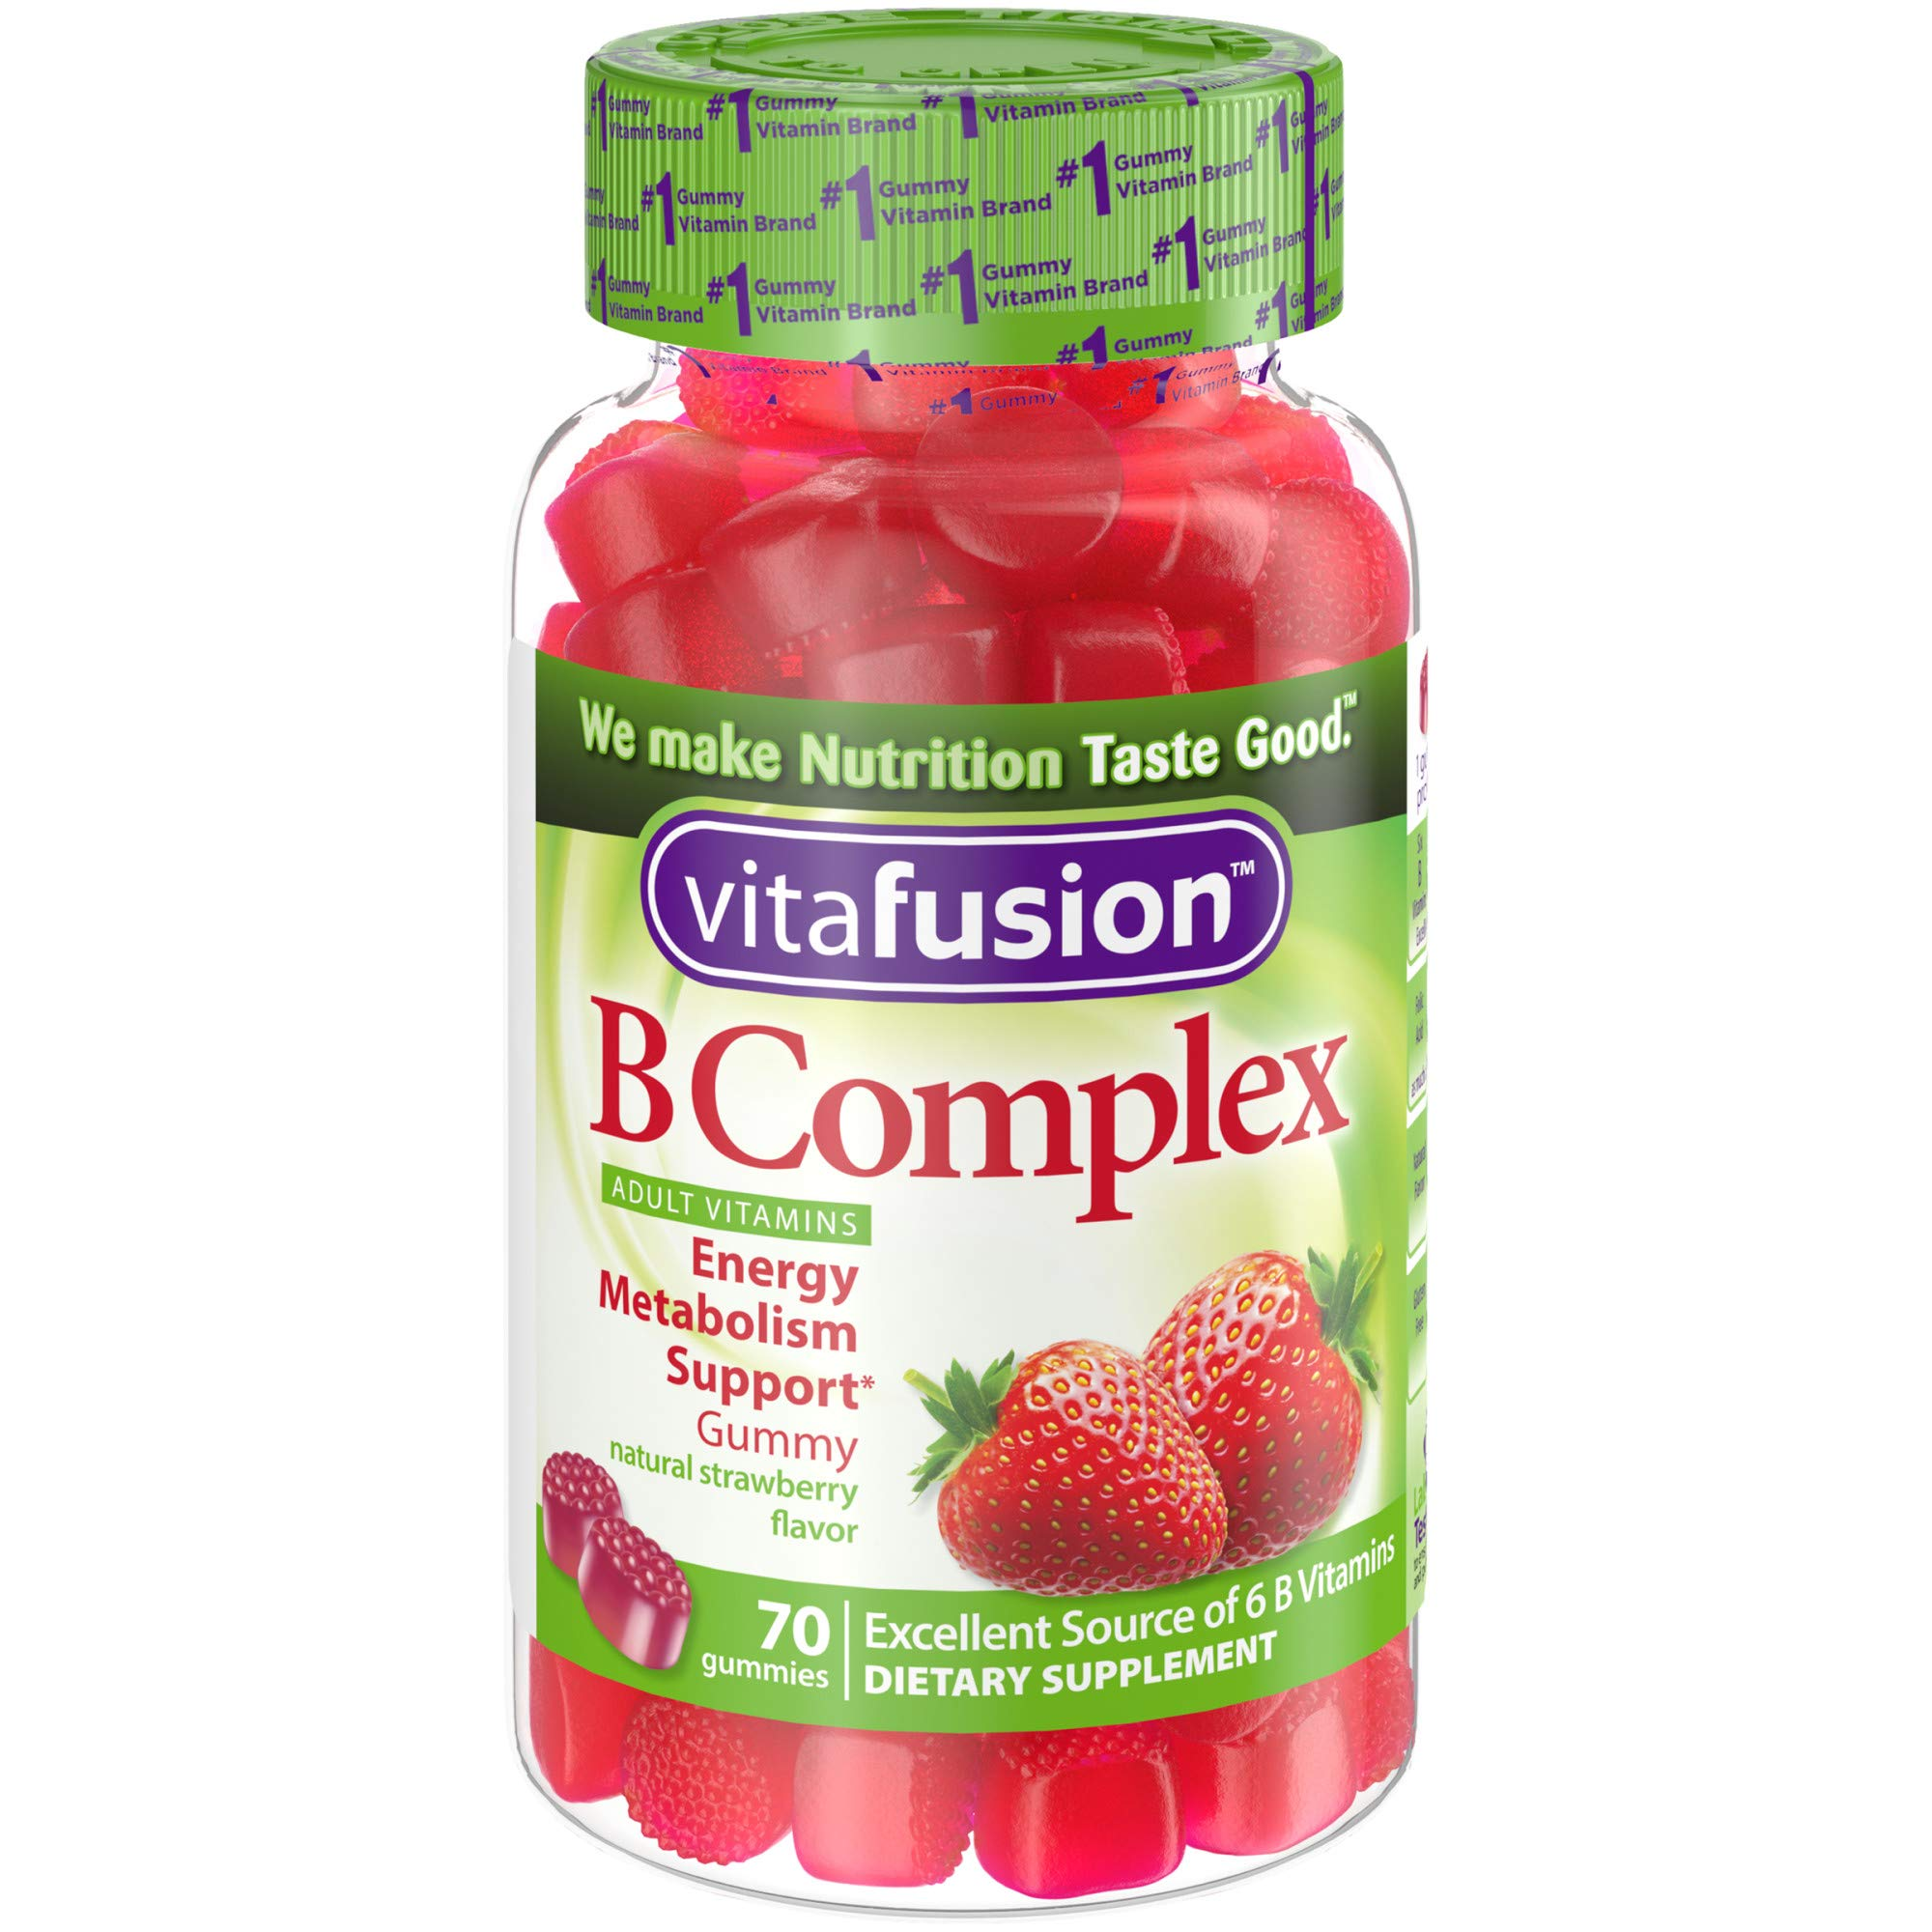 vitafusion b complex gummy vitamins for adults review